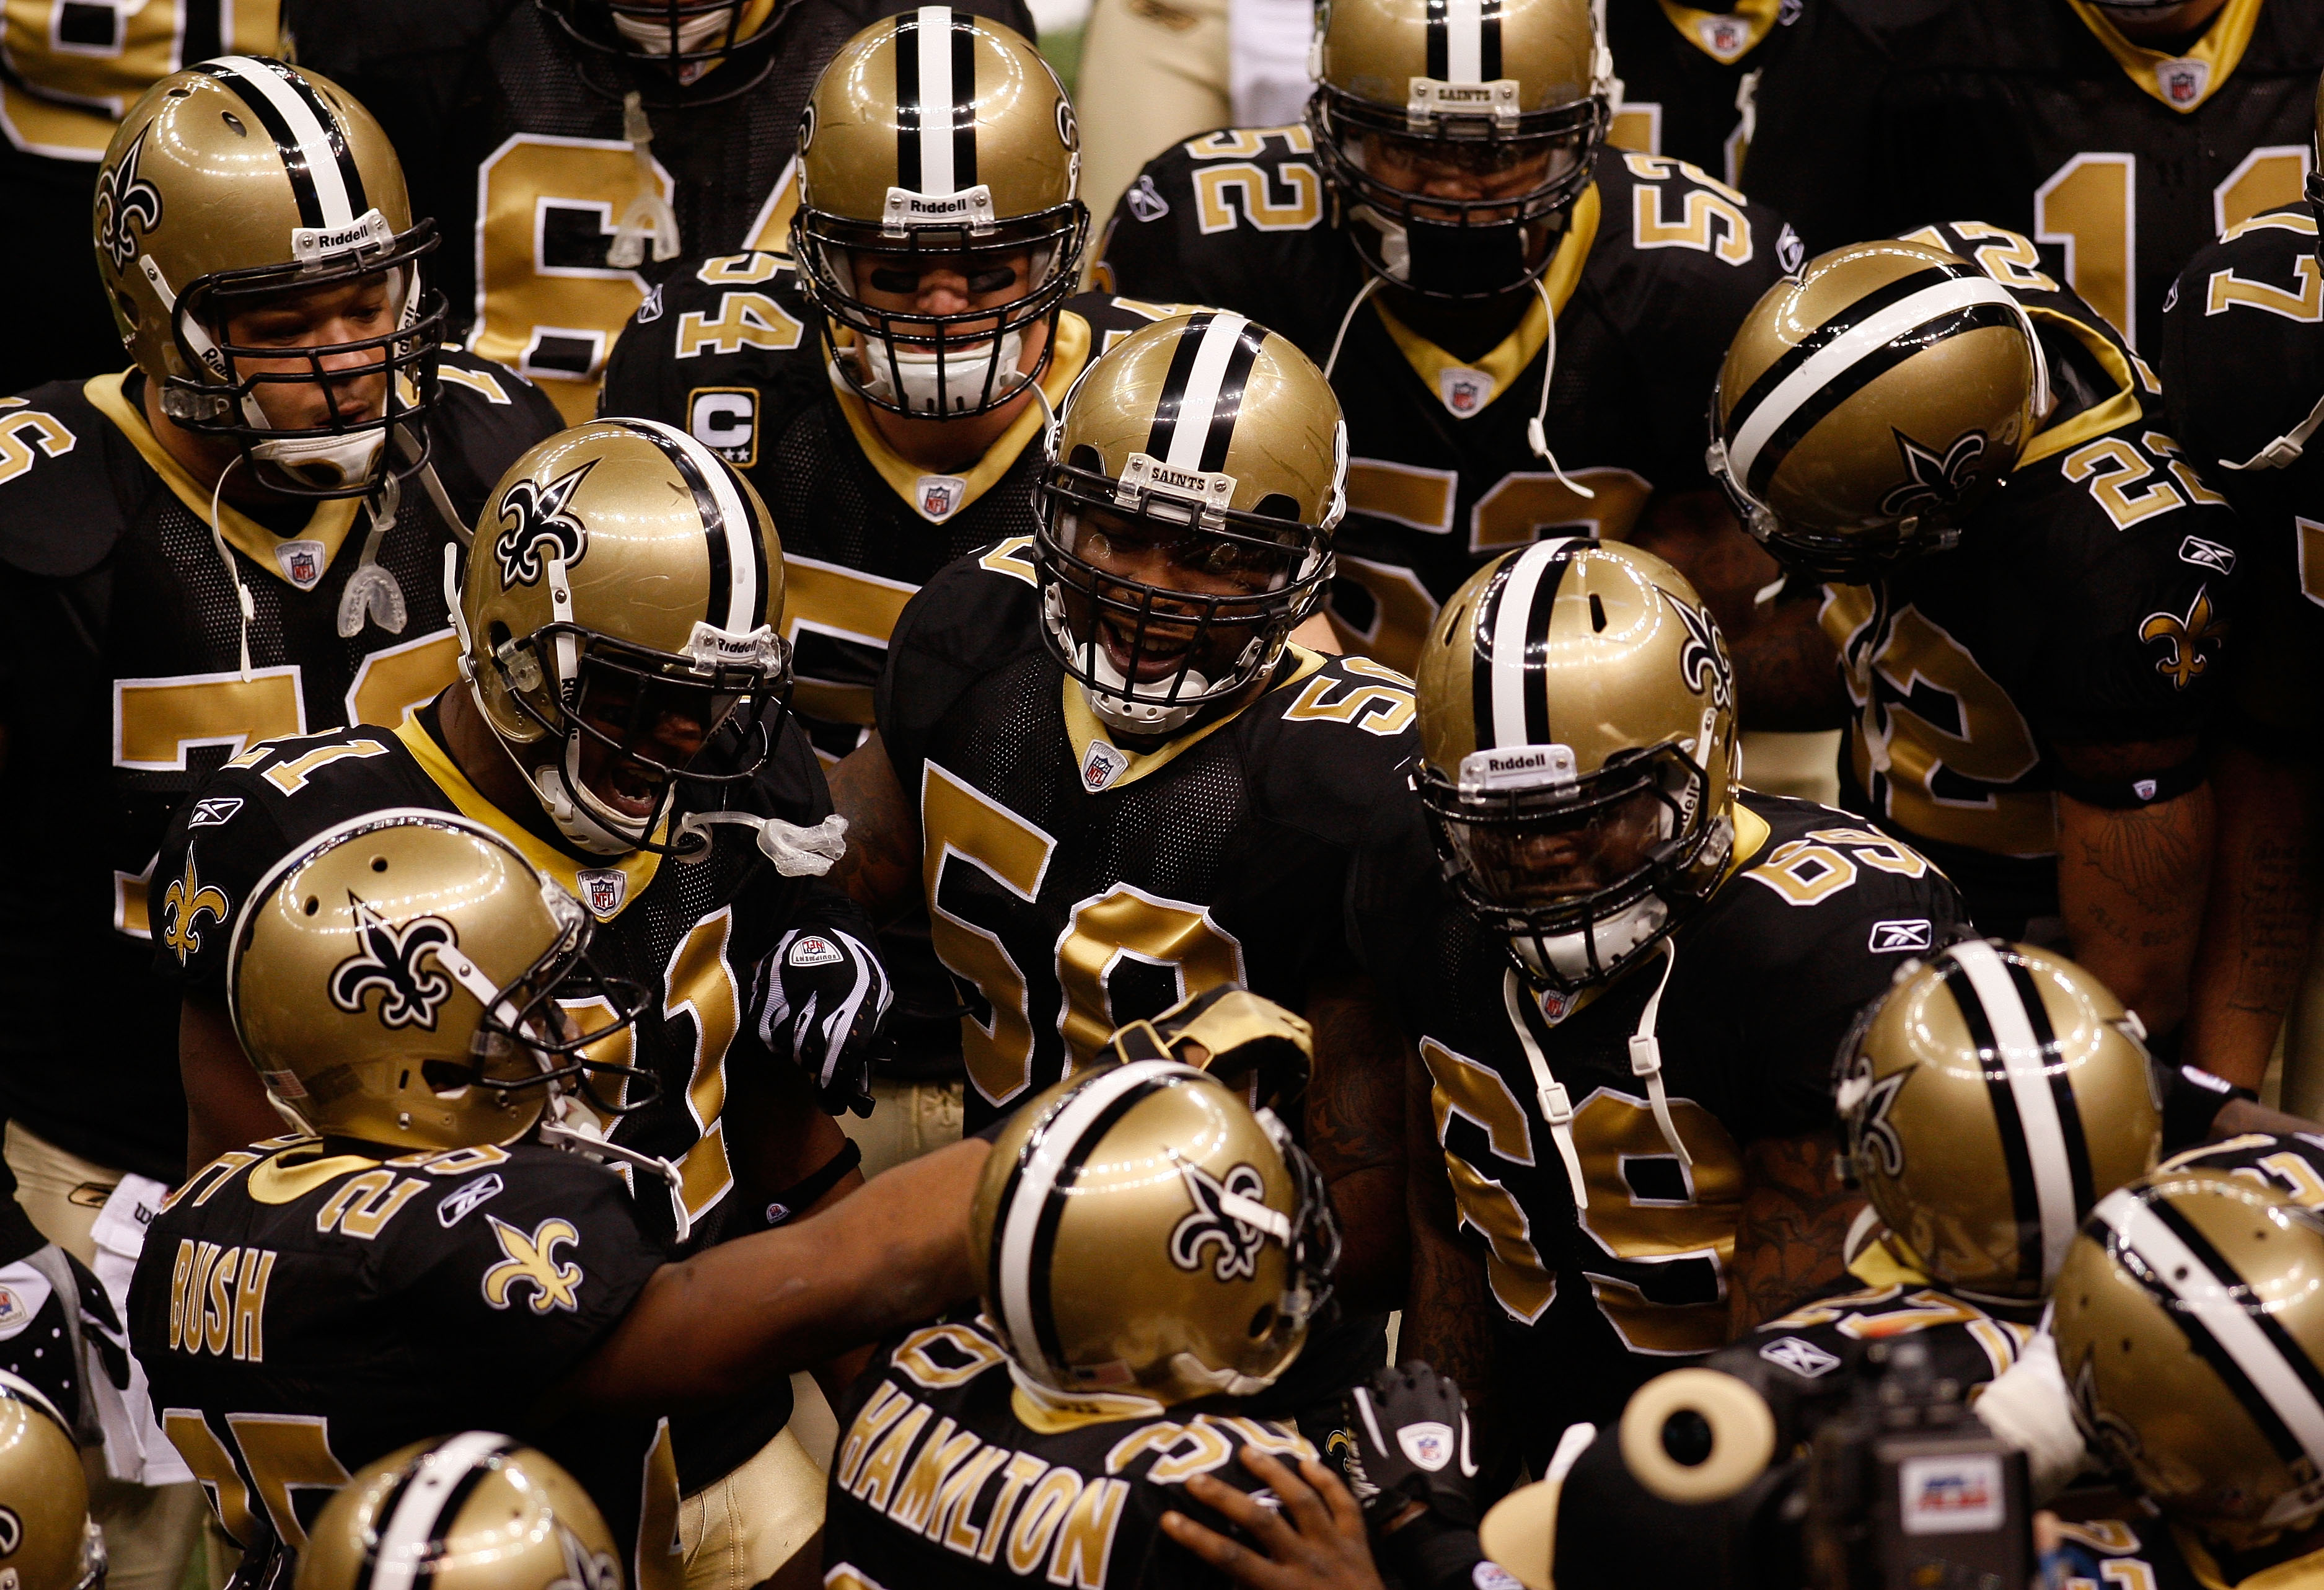 NEW ORLEANS - JANUARY 16:  Players from the New Orleans Saints huddle up on the field during warm ups against the Arizona Cardinals during the NFC Divisional Playoff Game at Louisana Superdome on January 16, 2010 in New Orleans, Louisiana.  (Photo by Chri